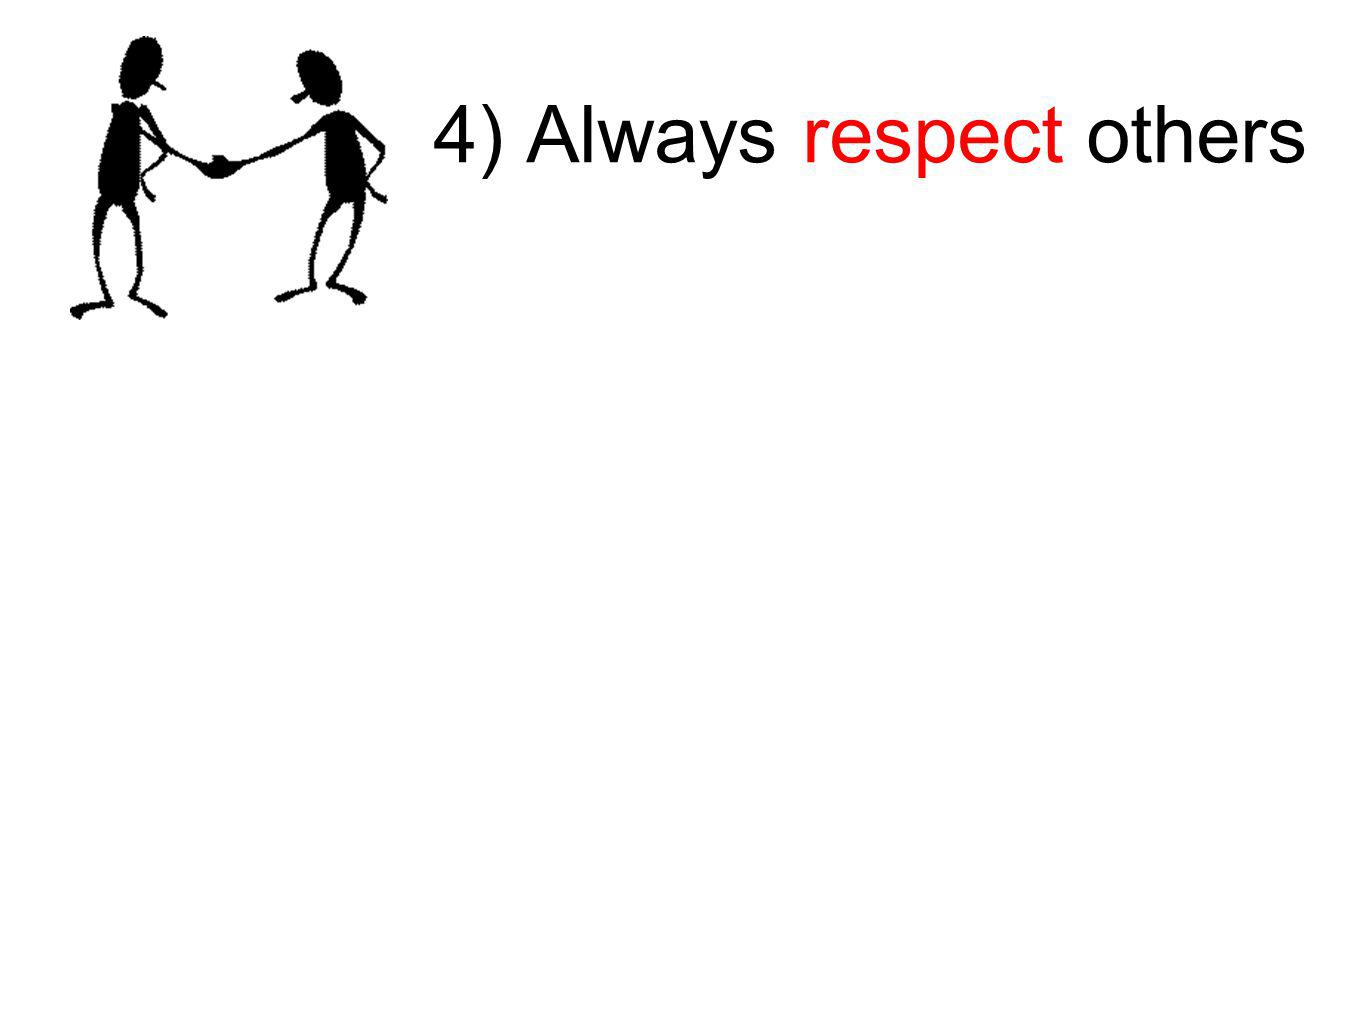 4) Always respect others